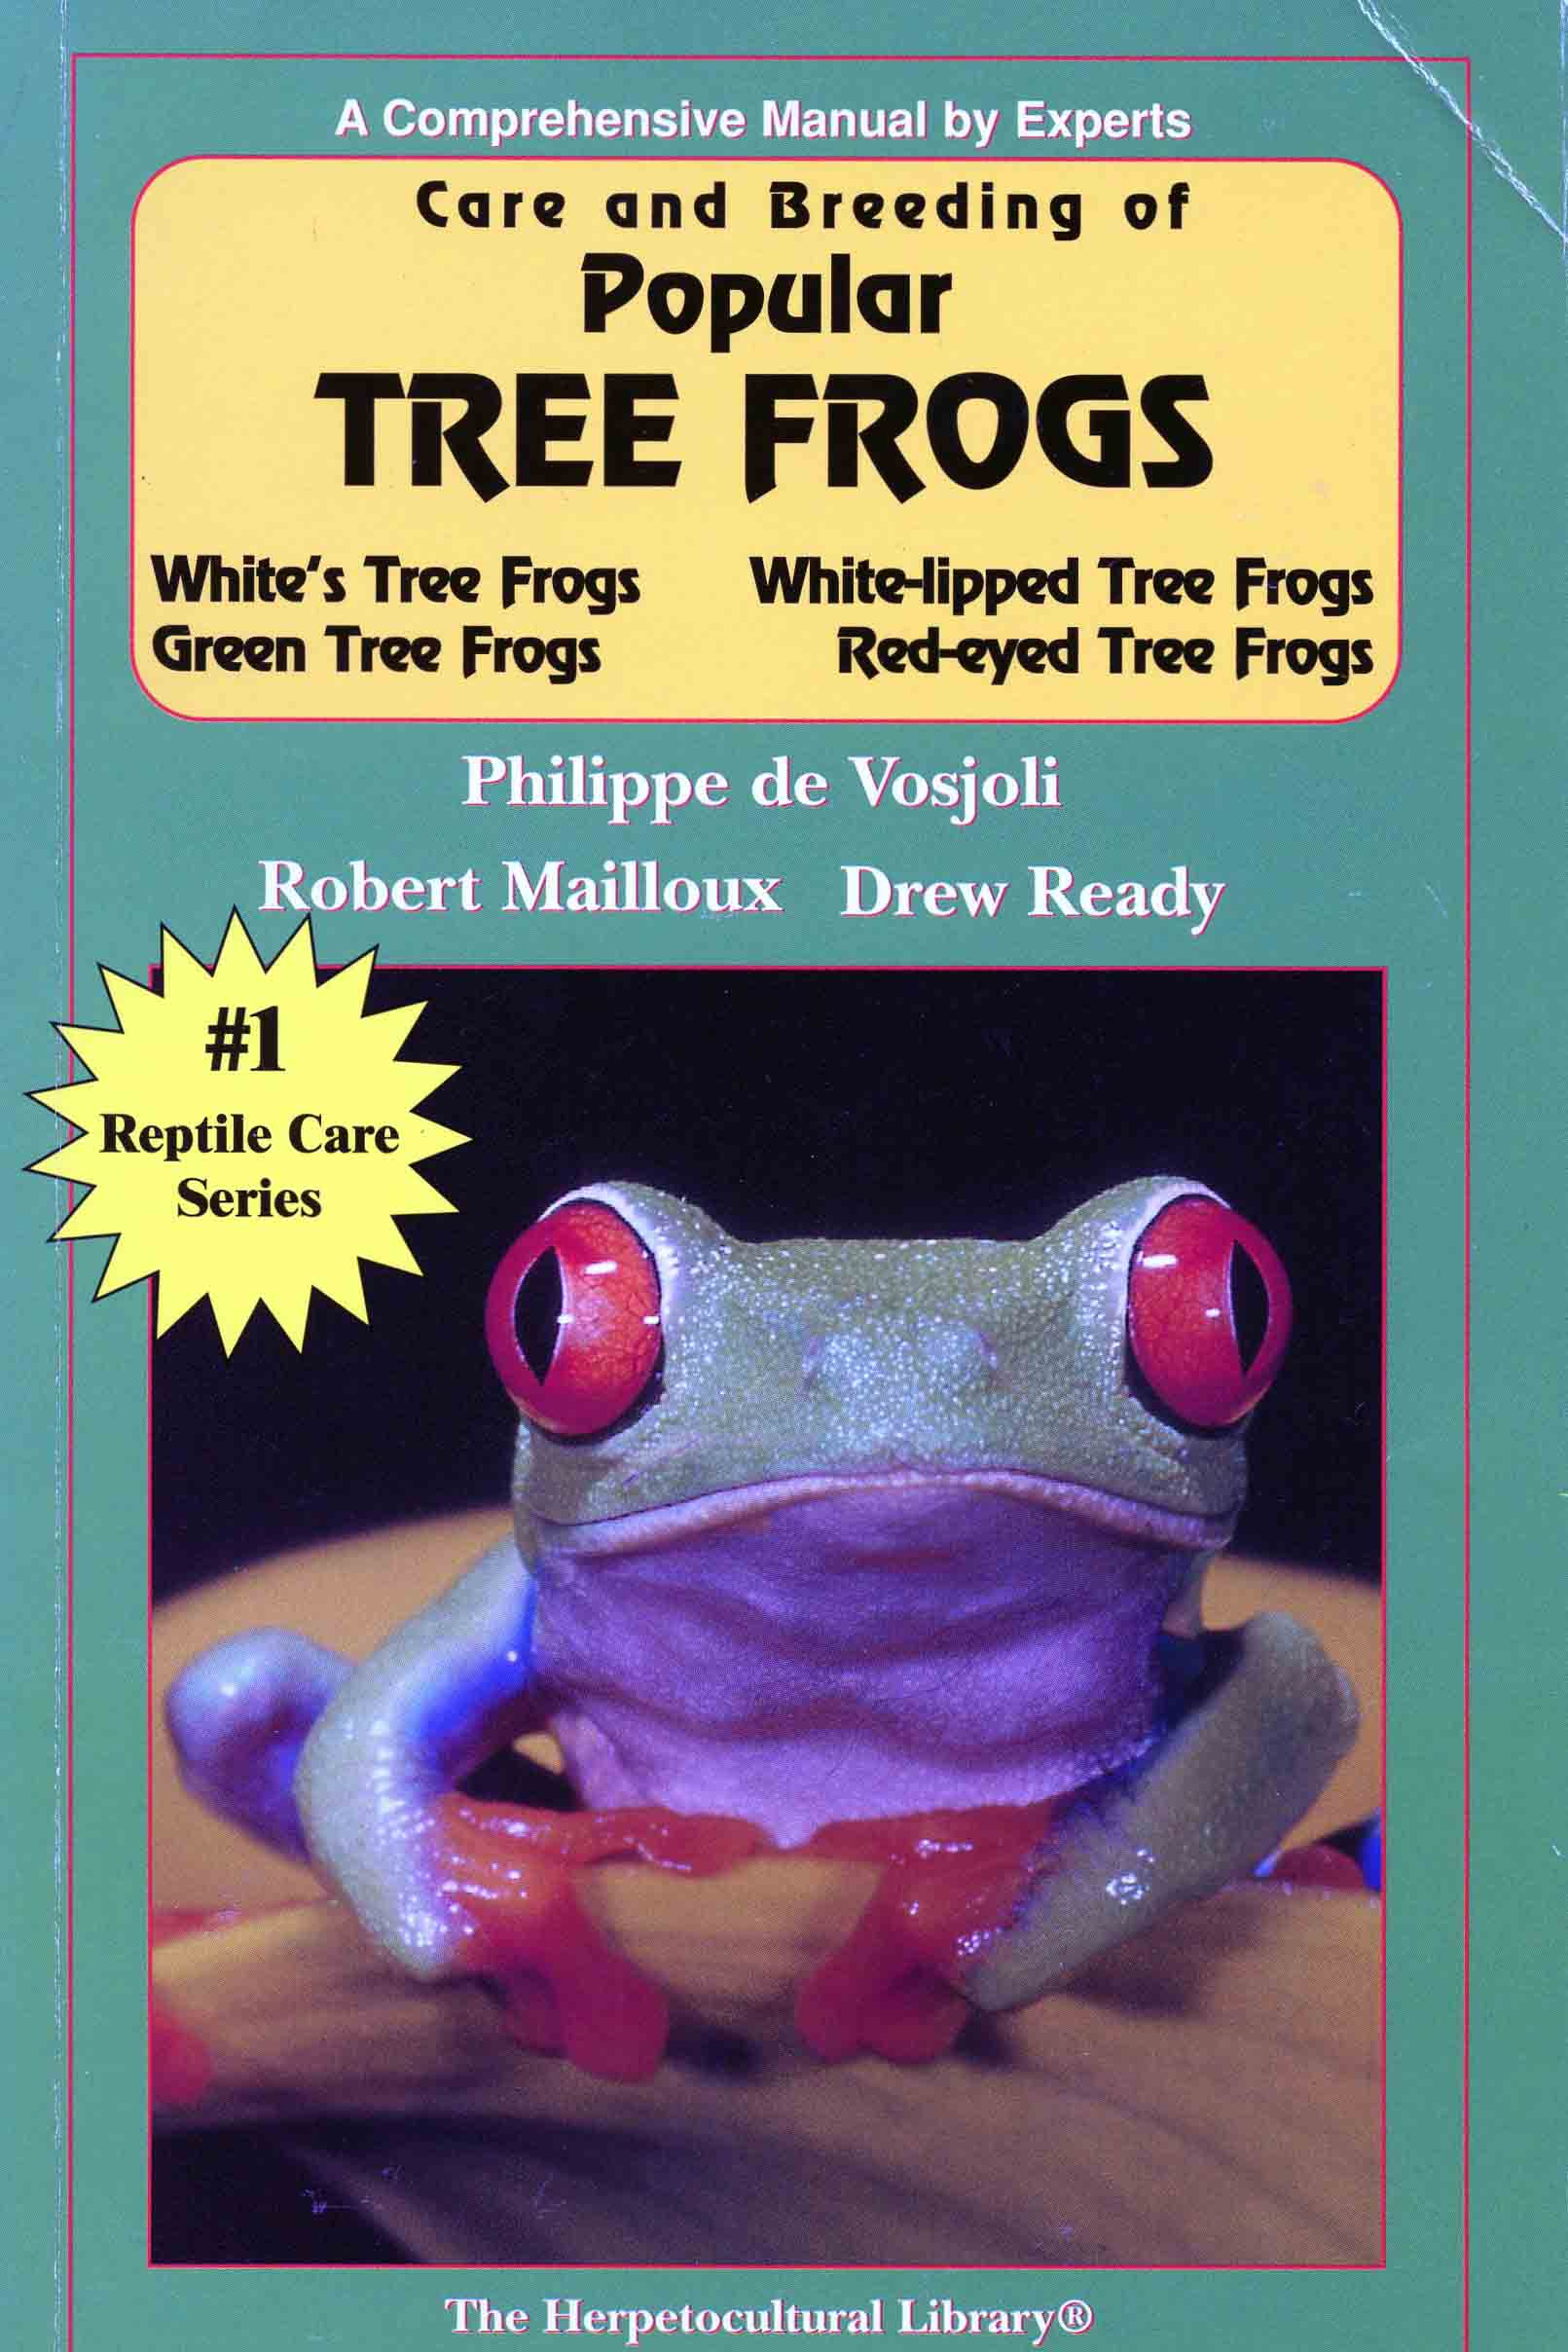 Image for Care and Breeding of Popular Tree Frogs: White's Tree Frogs, Green Tree Frogs, While-Lipped Tree Frogs, Red Eyed Tree Frogs,